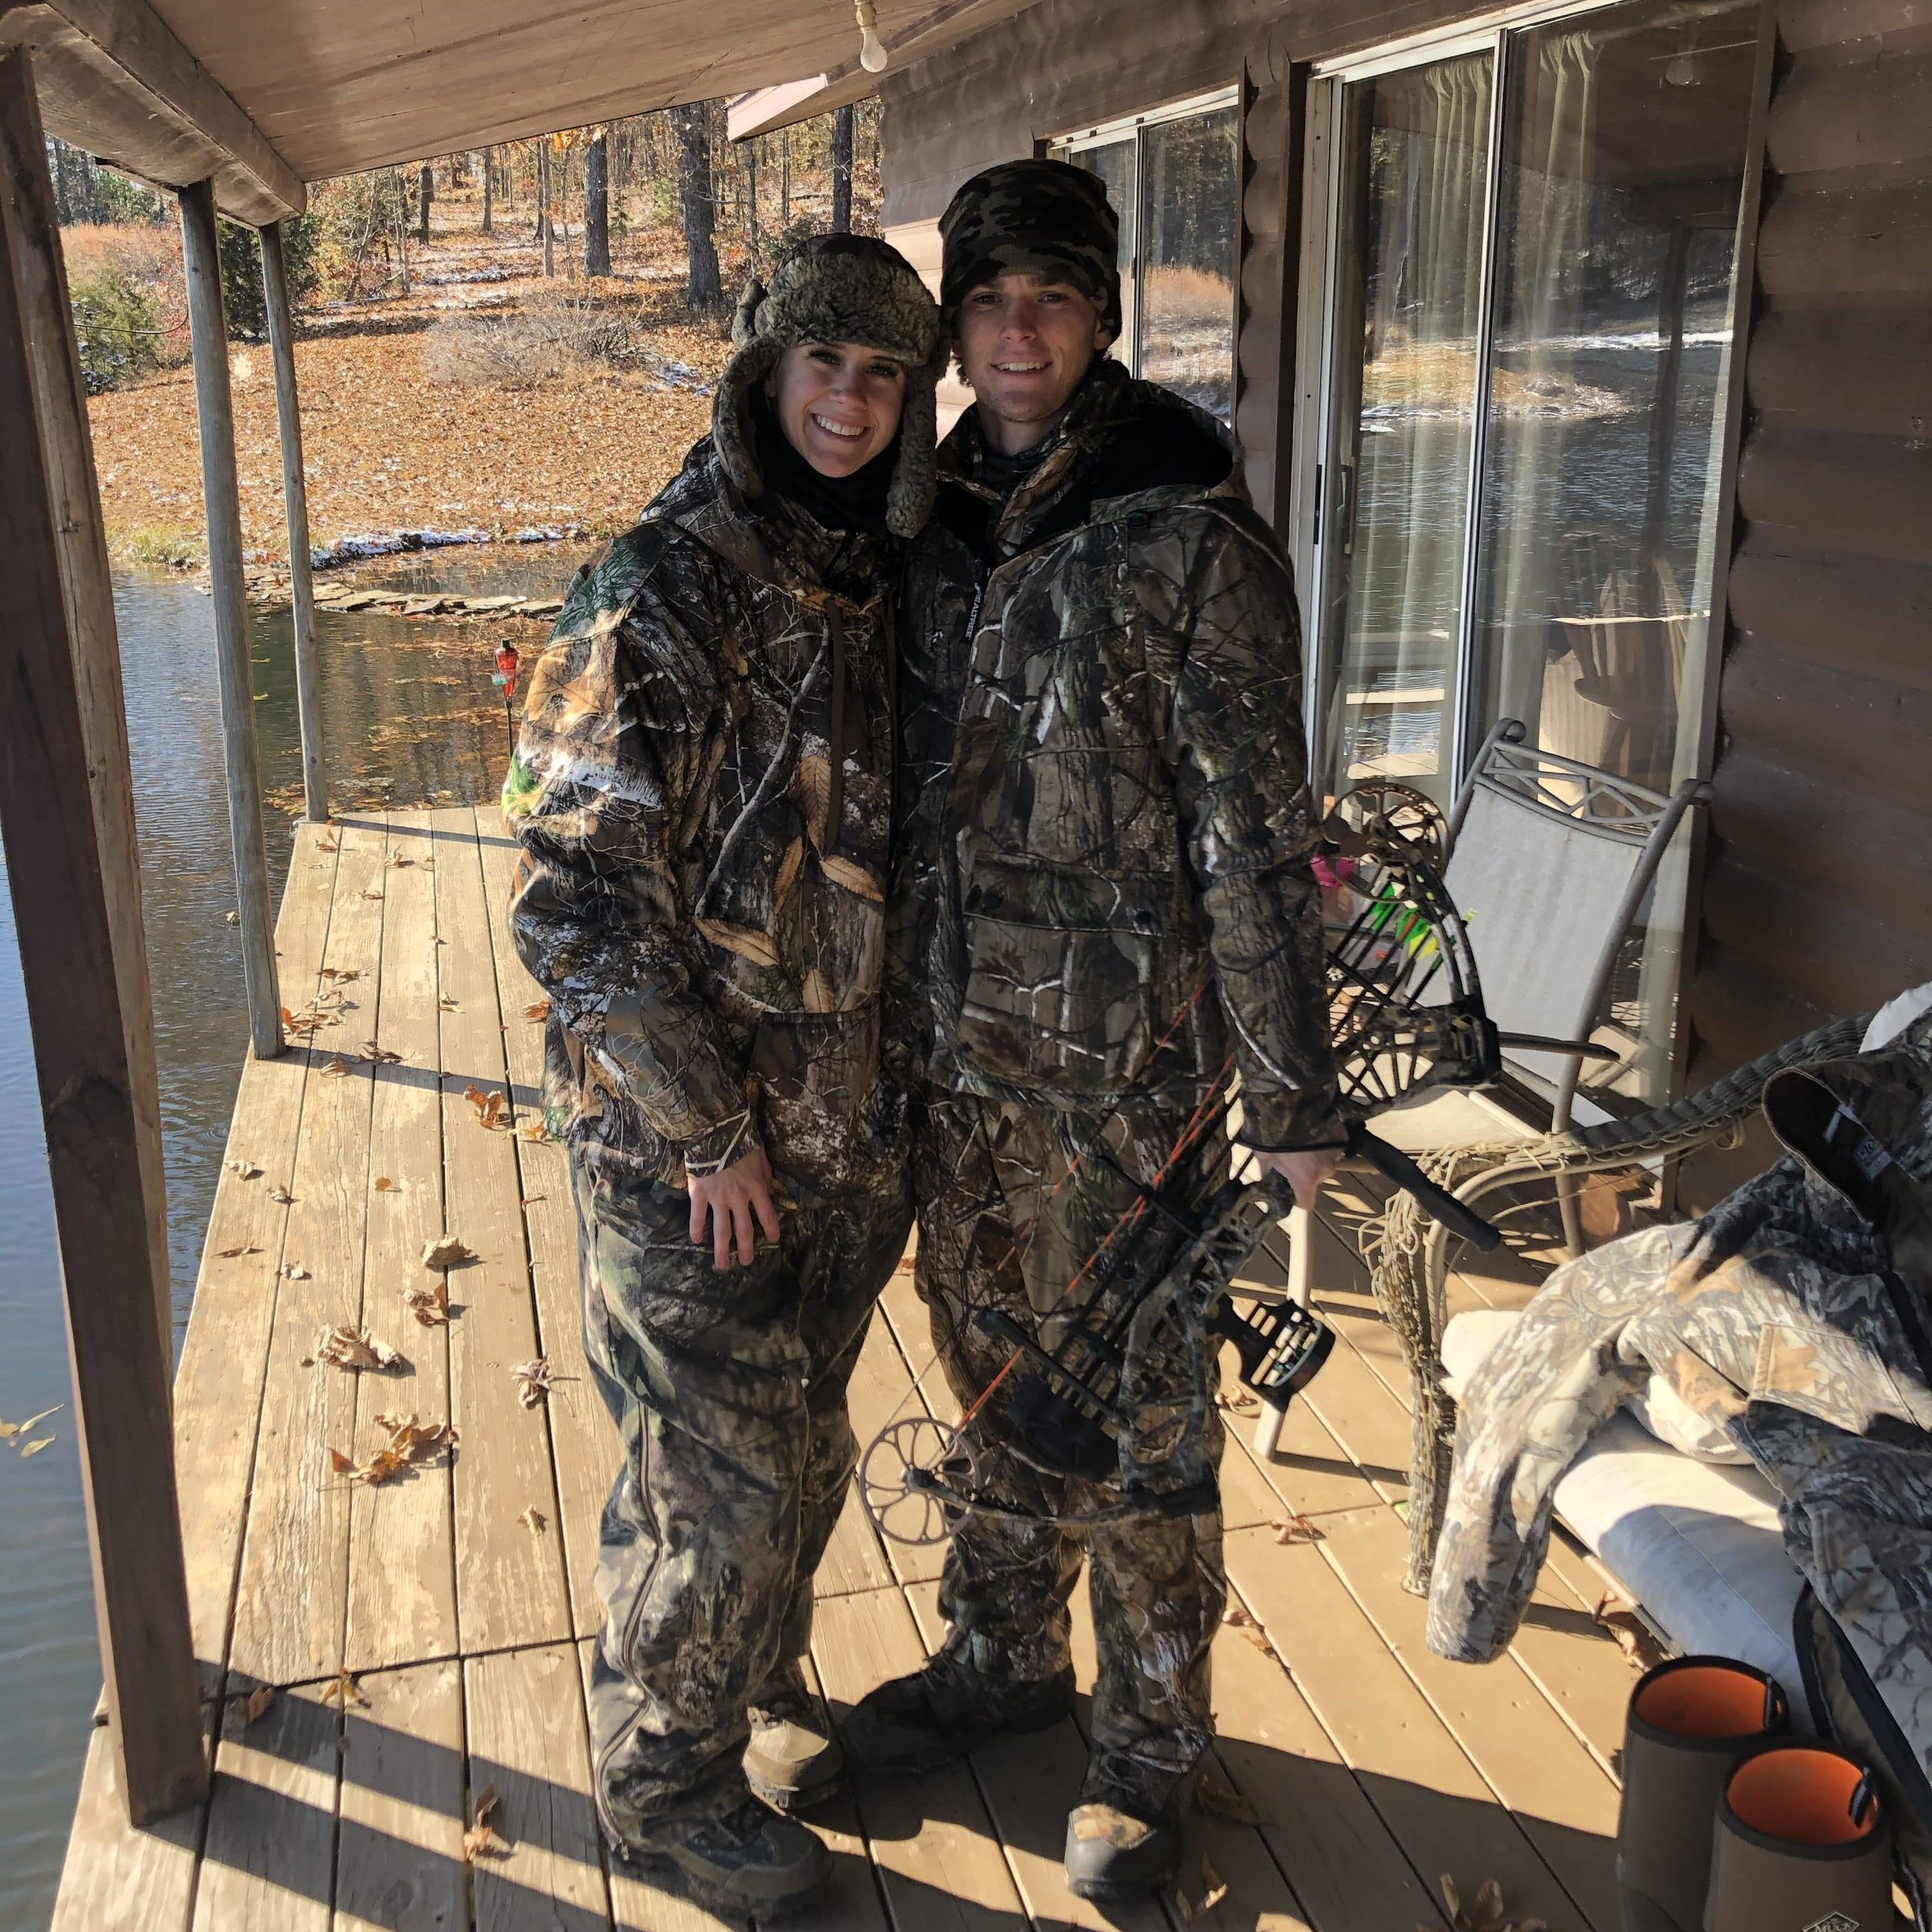 Hailey Woolworth The Hair Standard Las Vegas in camo hunting gear